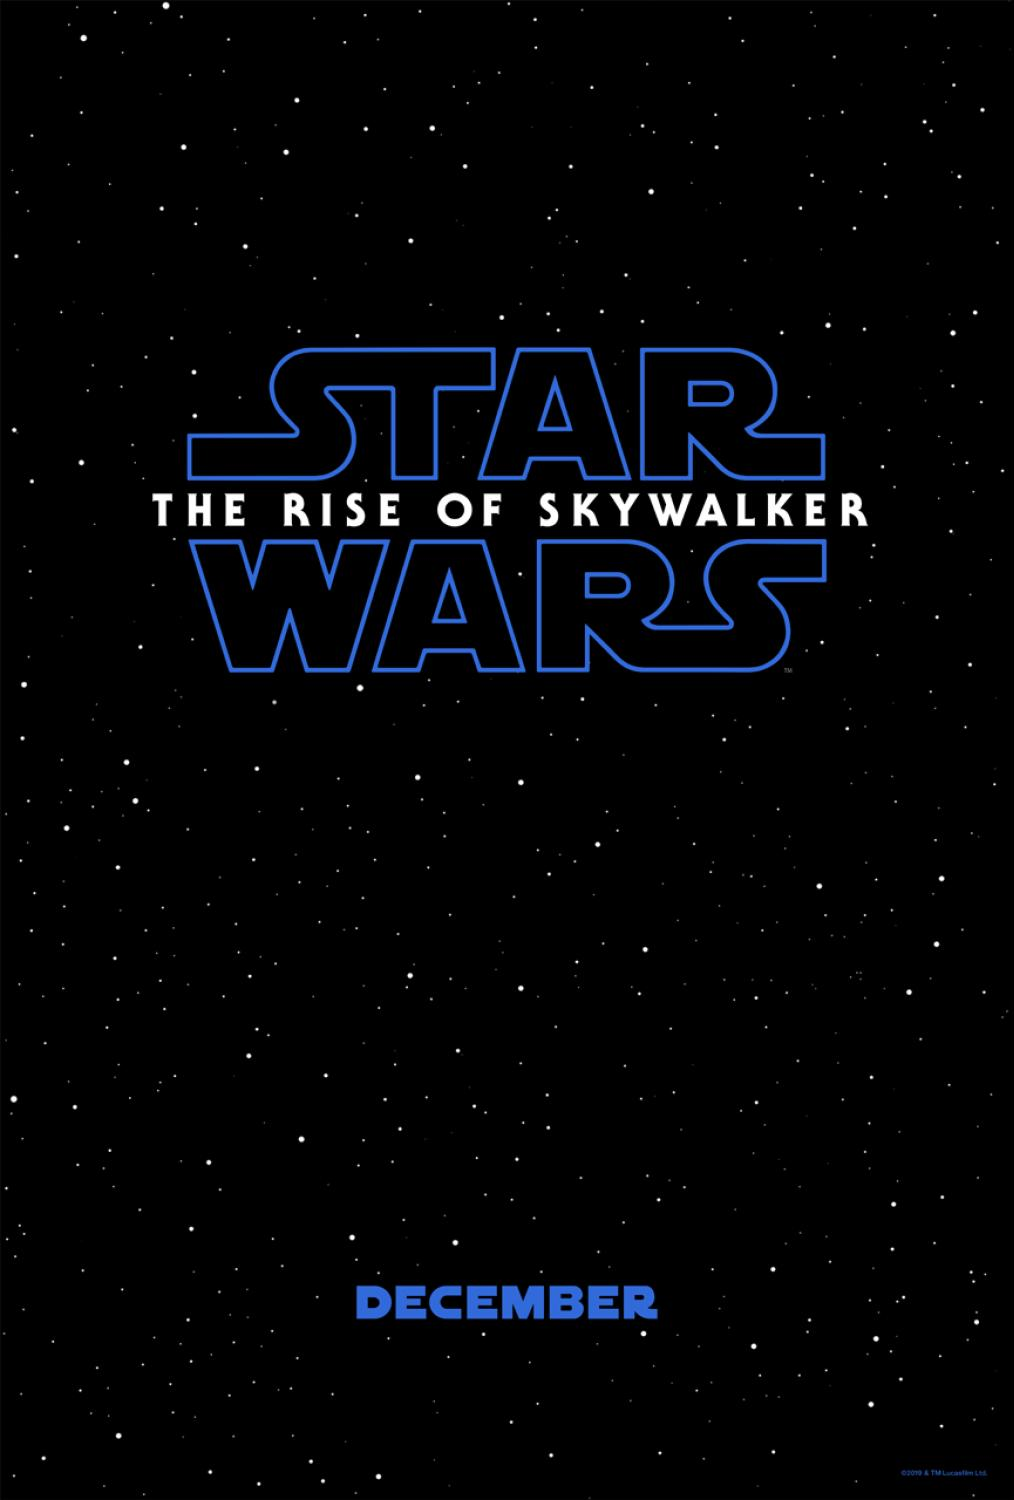 New Star Wars: The Rise of Skywalker Movie Poster